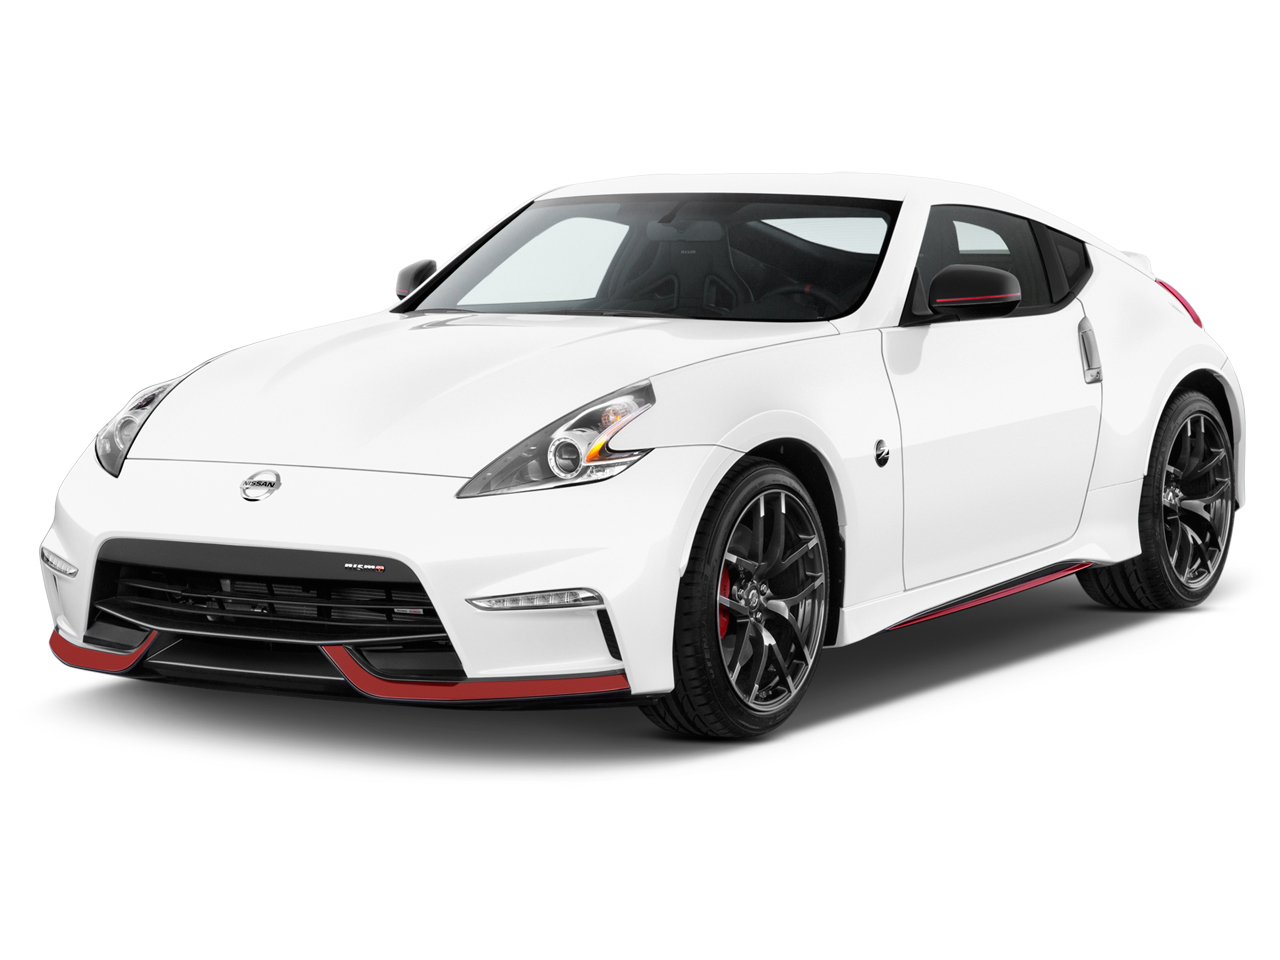 2015 Nissan 370Z Review, Ratings, Specs, Prices, and ...